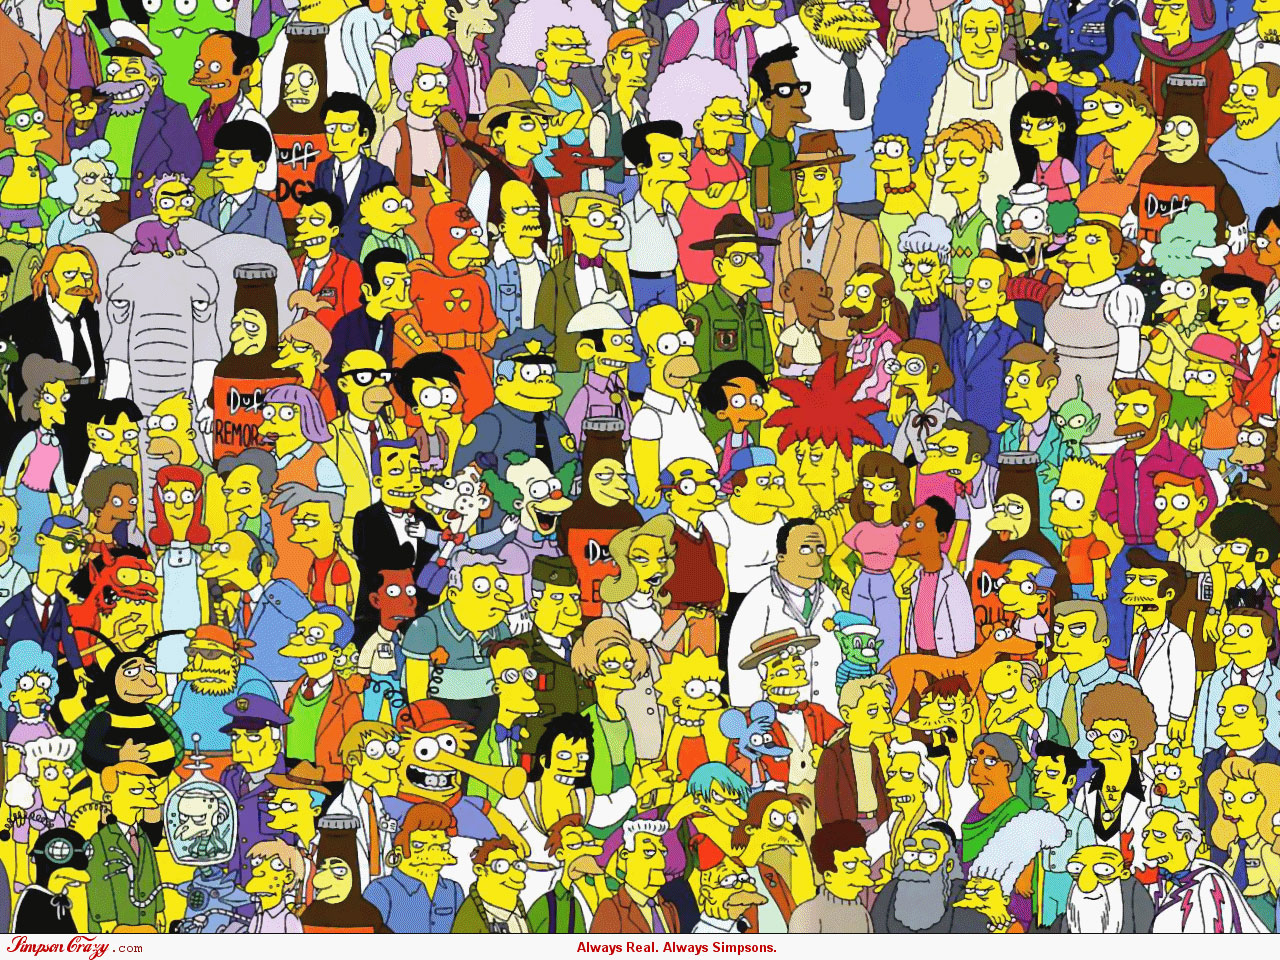 http://tuxboard1.free.fr/images/wallpapers/simpsons/SimpsonsCast_1280.jpg